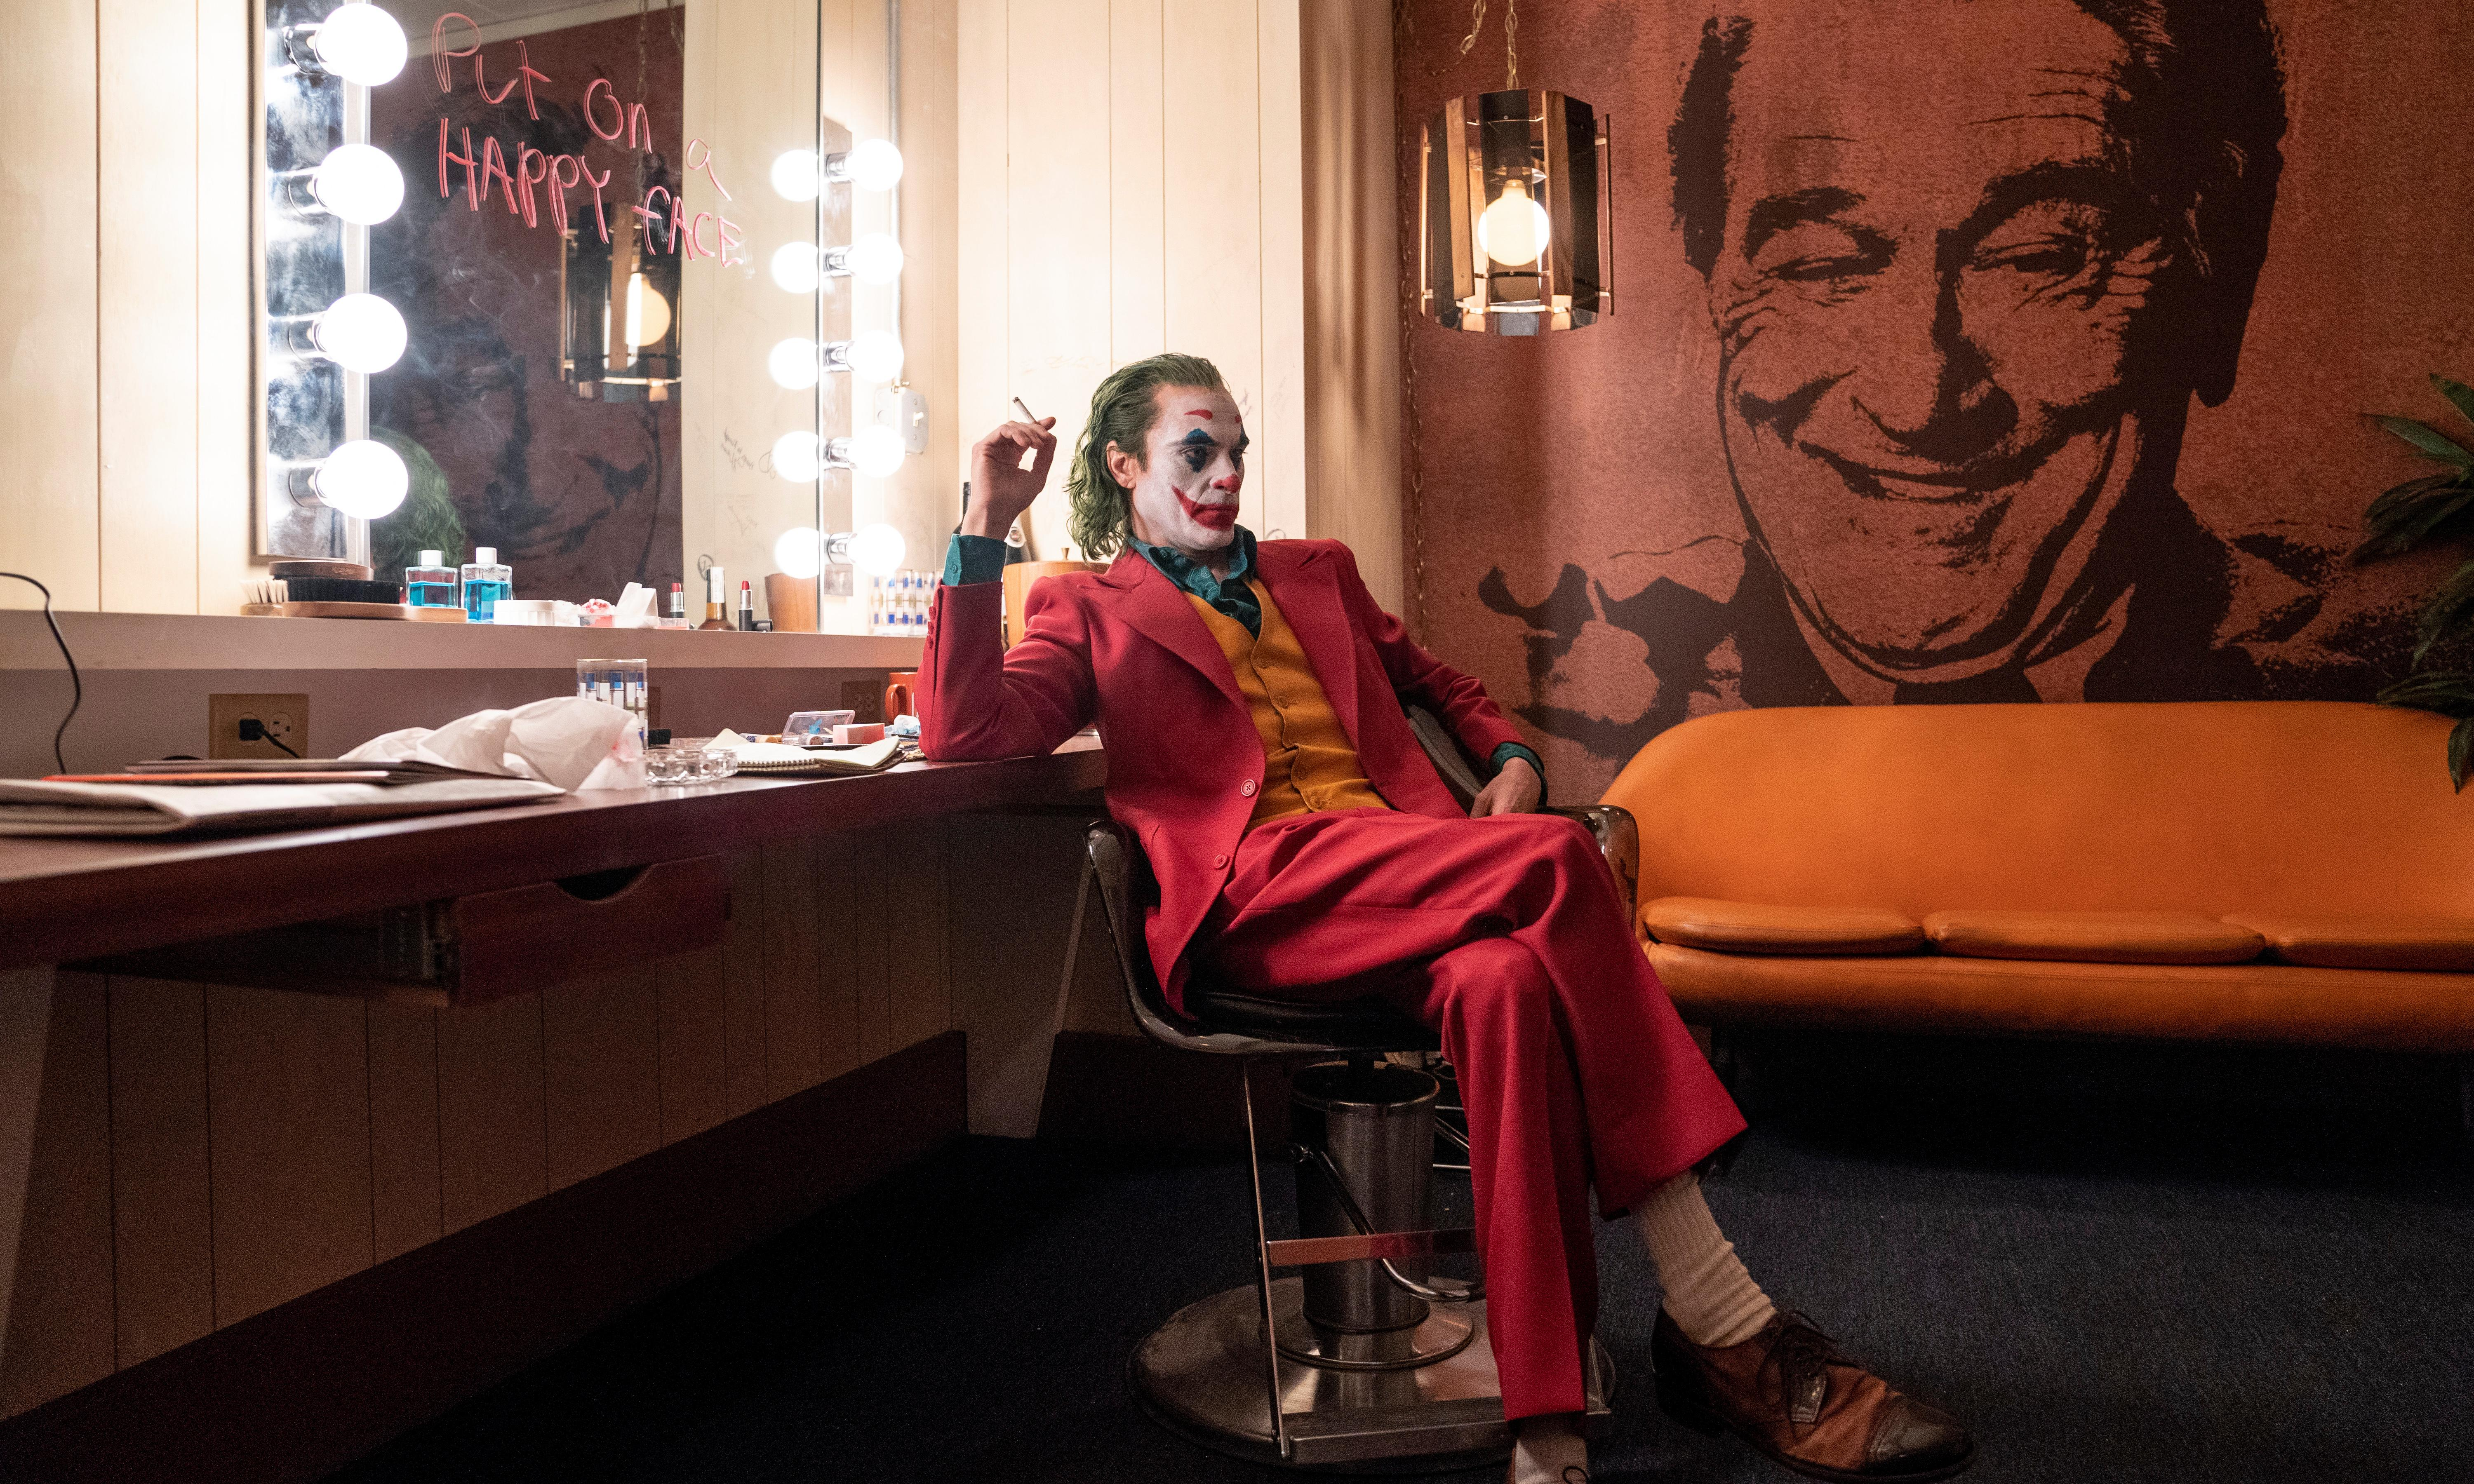 Joker review – the most disappointing film of the year